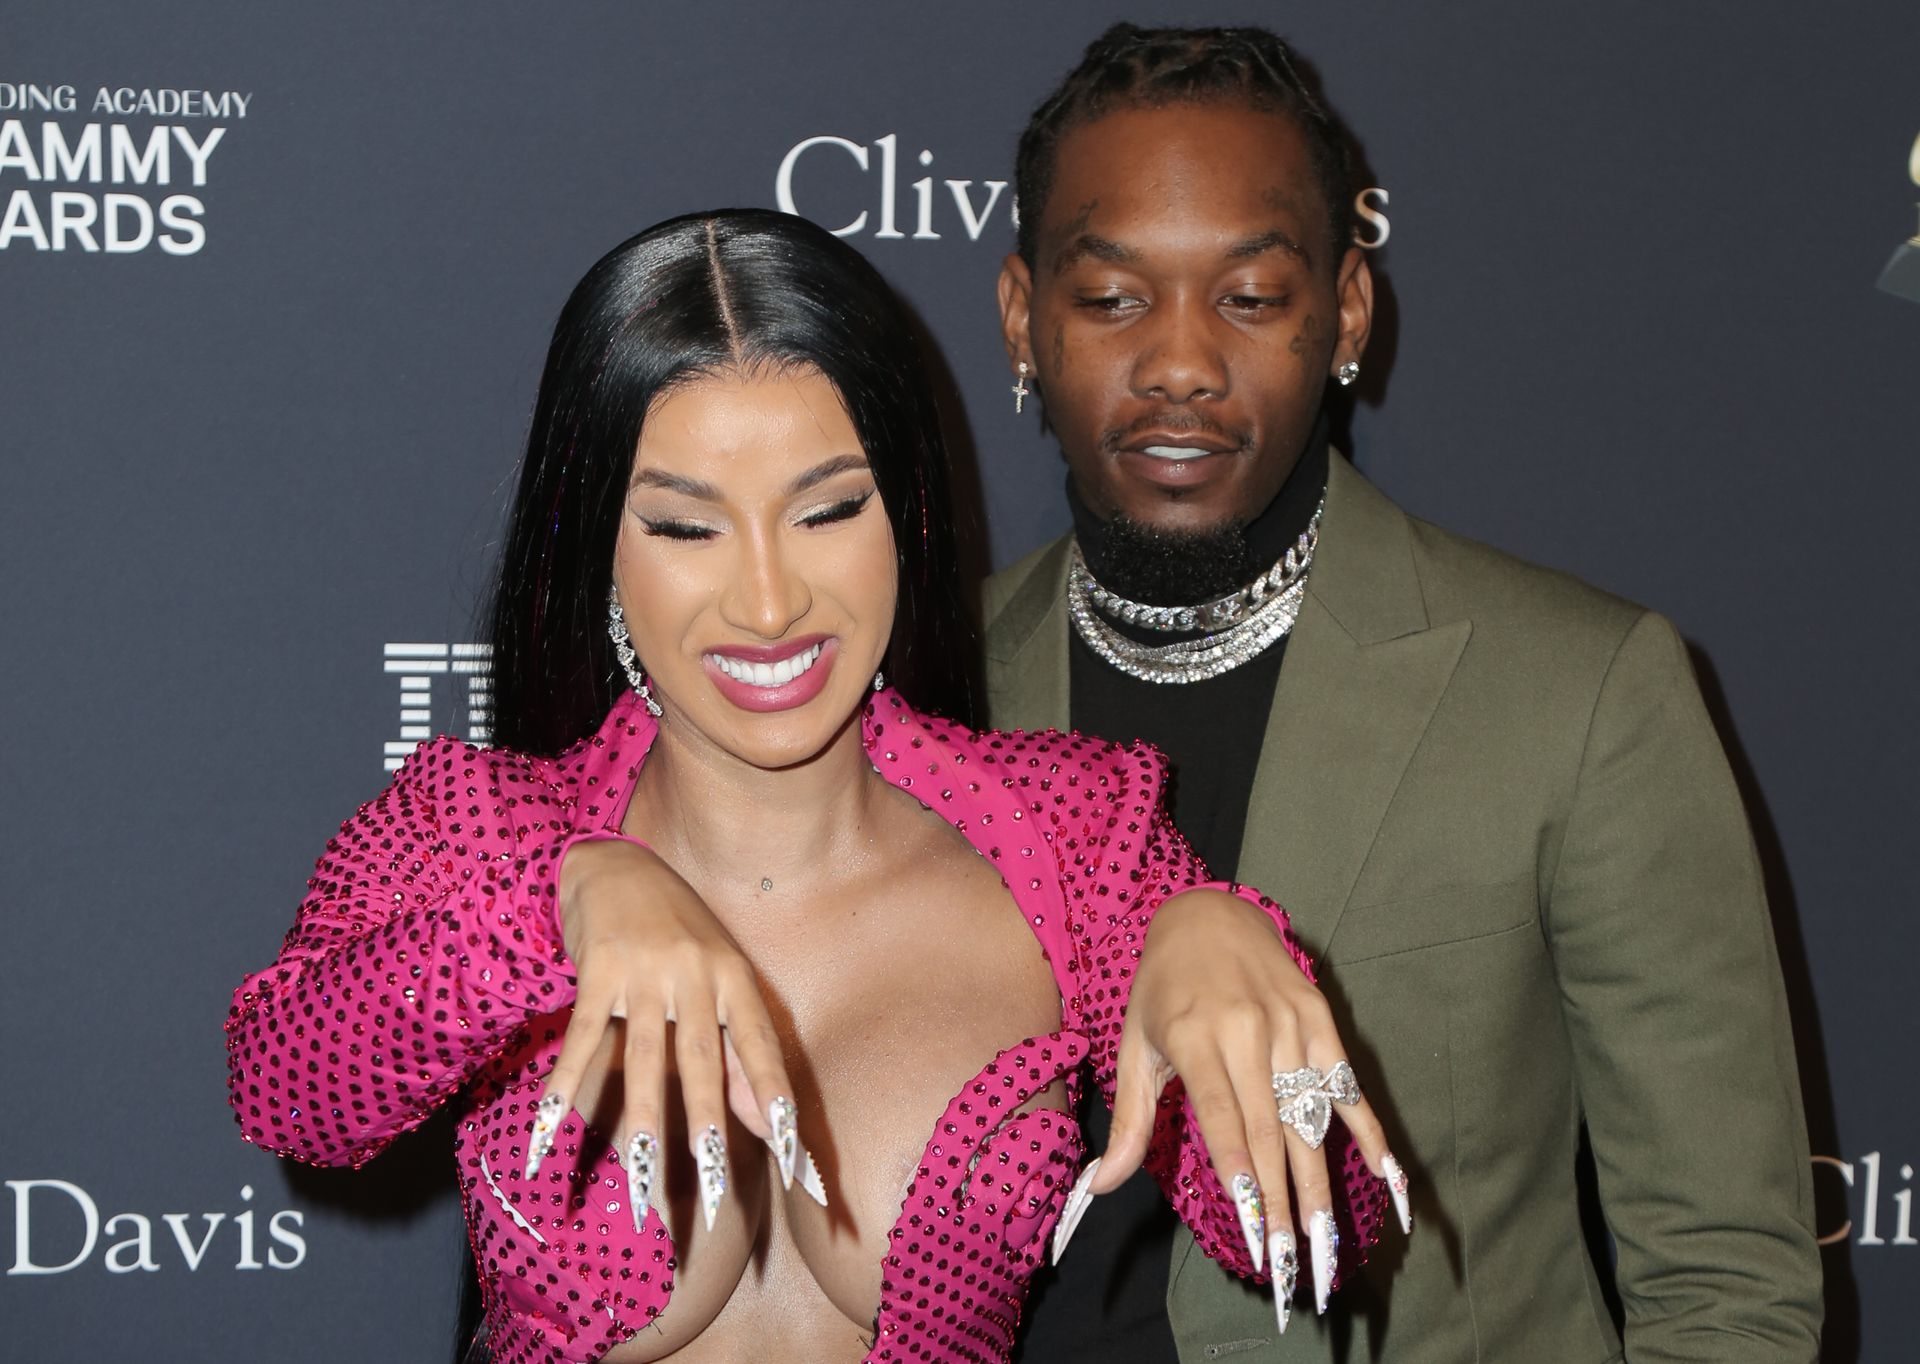 Offset Covers Cardi B's Boobs To Avoid Wardrobe Malfunction At Clive Davis Pre Grammy Party 0090